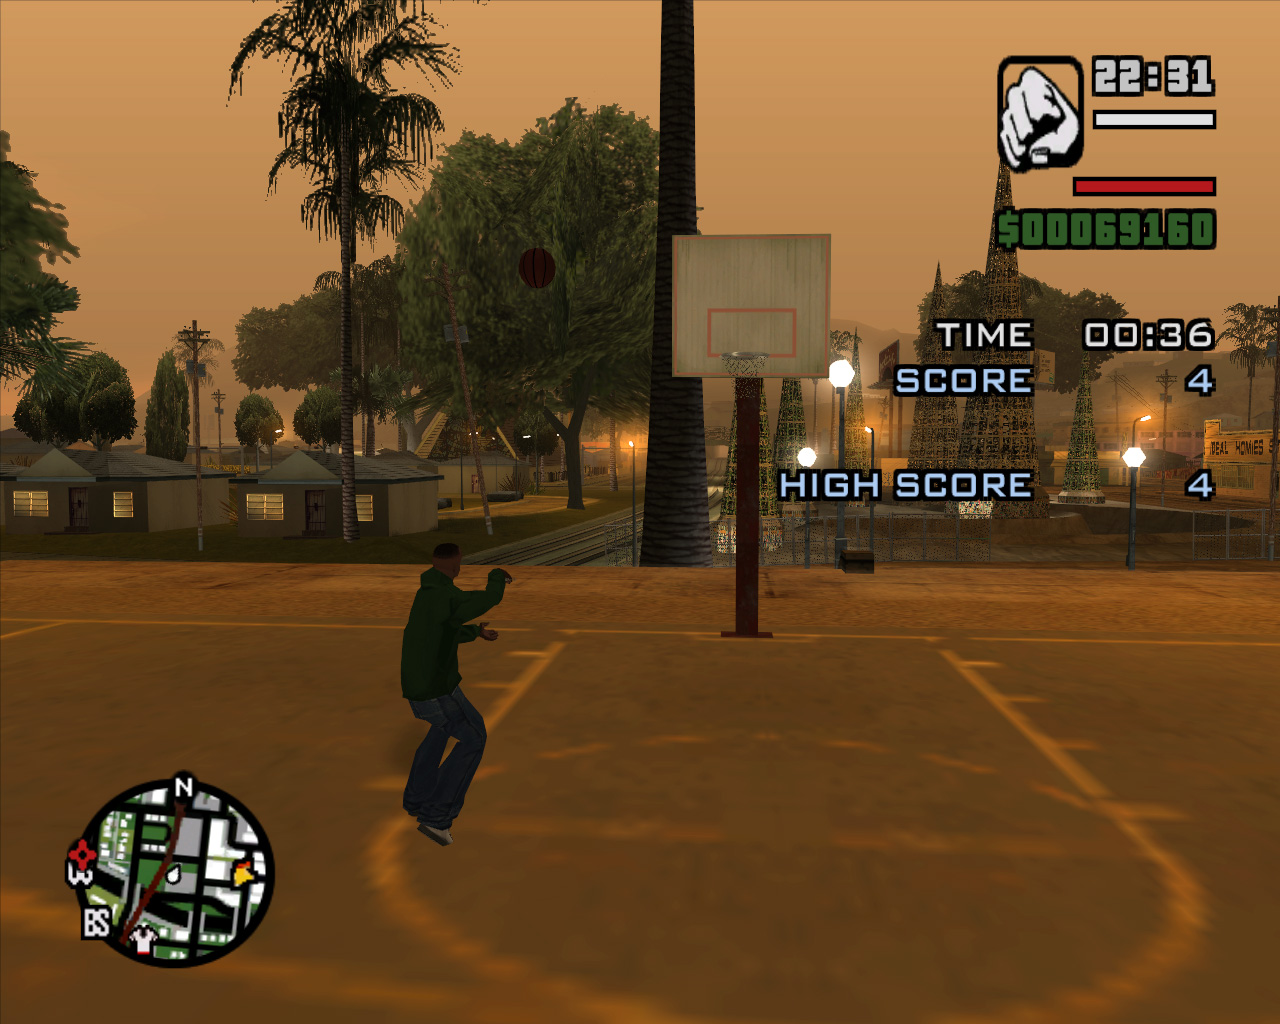 Image cj gtav transparent png gta wiki the grand theft auto wiki - A Basketball Challenge In Progress In Gta San Andreas Cj Is Seen Shooting A Basketball To A Basketball Hoop Basketball Is A Sport In The Grand Theft Auto